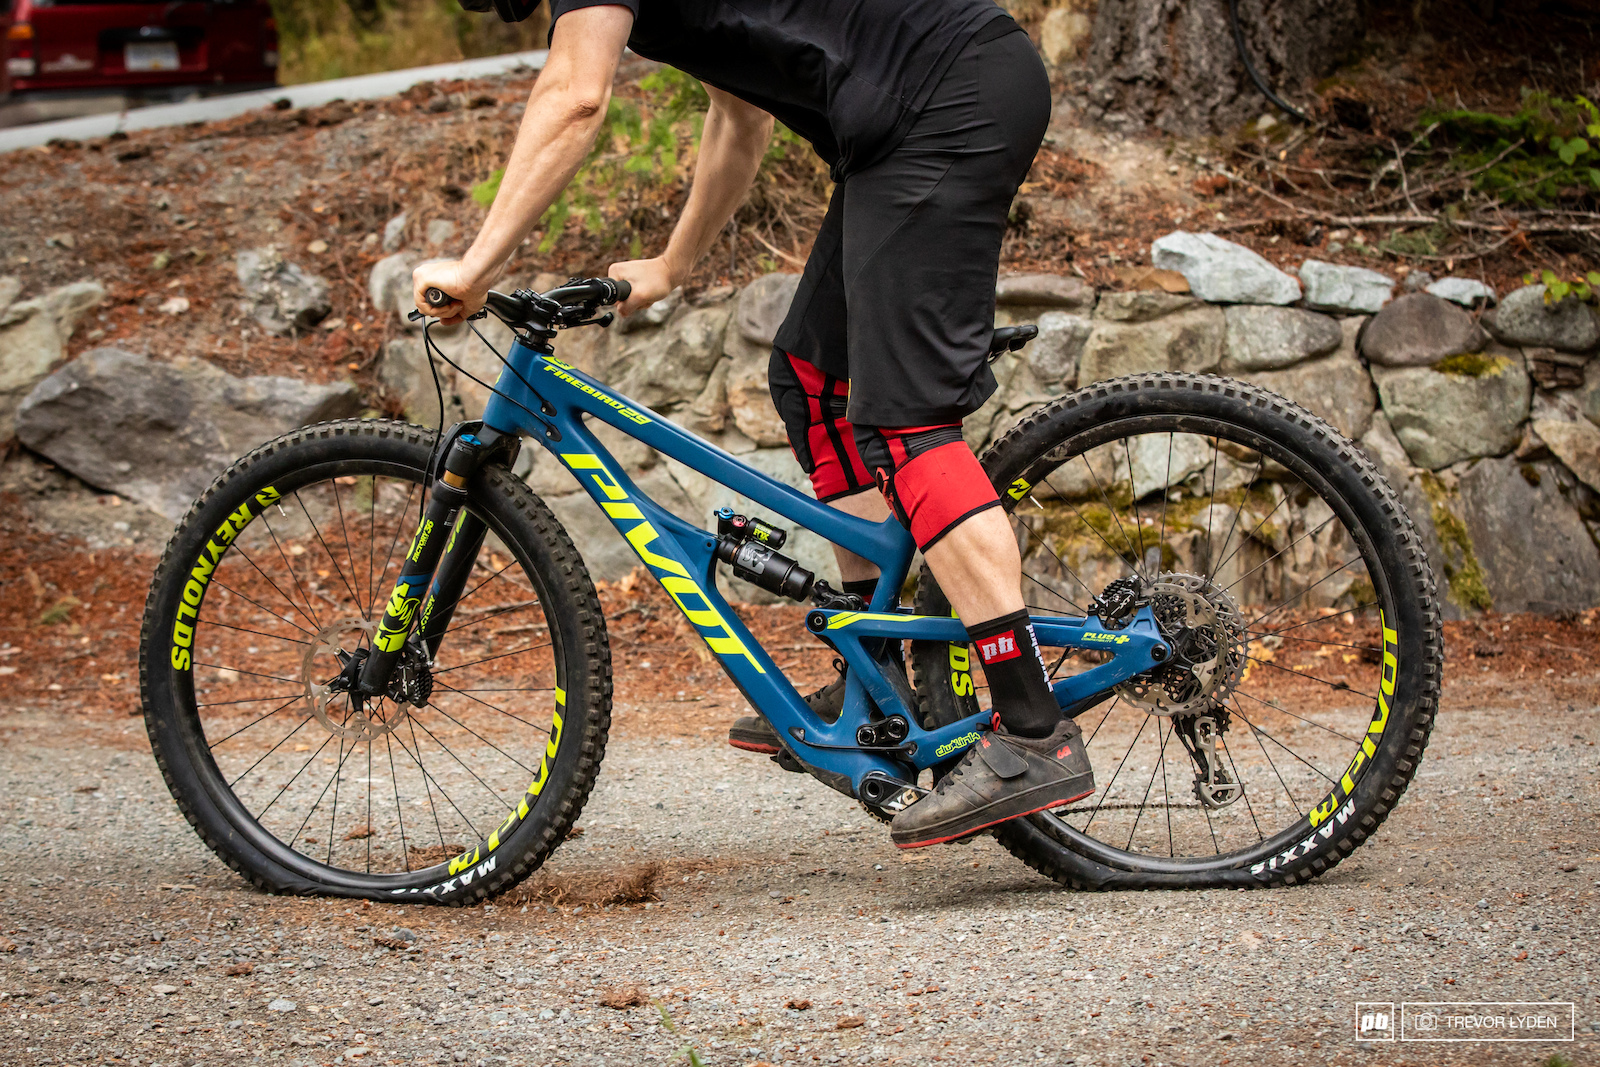 a7d86bca5ca ... hits. Whether it's the DW-Link suspension ramping up through the  stroke, or the latest version of the X2 shock and its bigger bottom out  bumper, ...